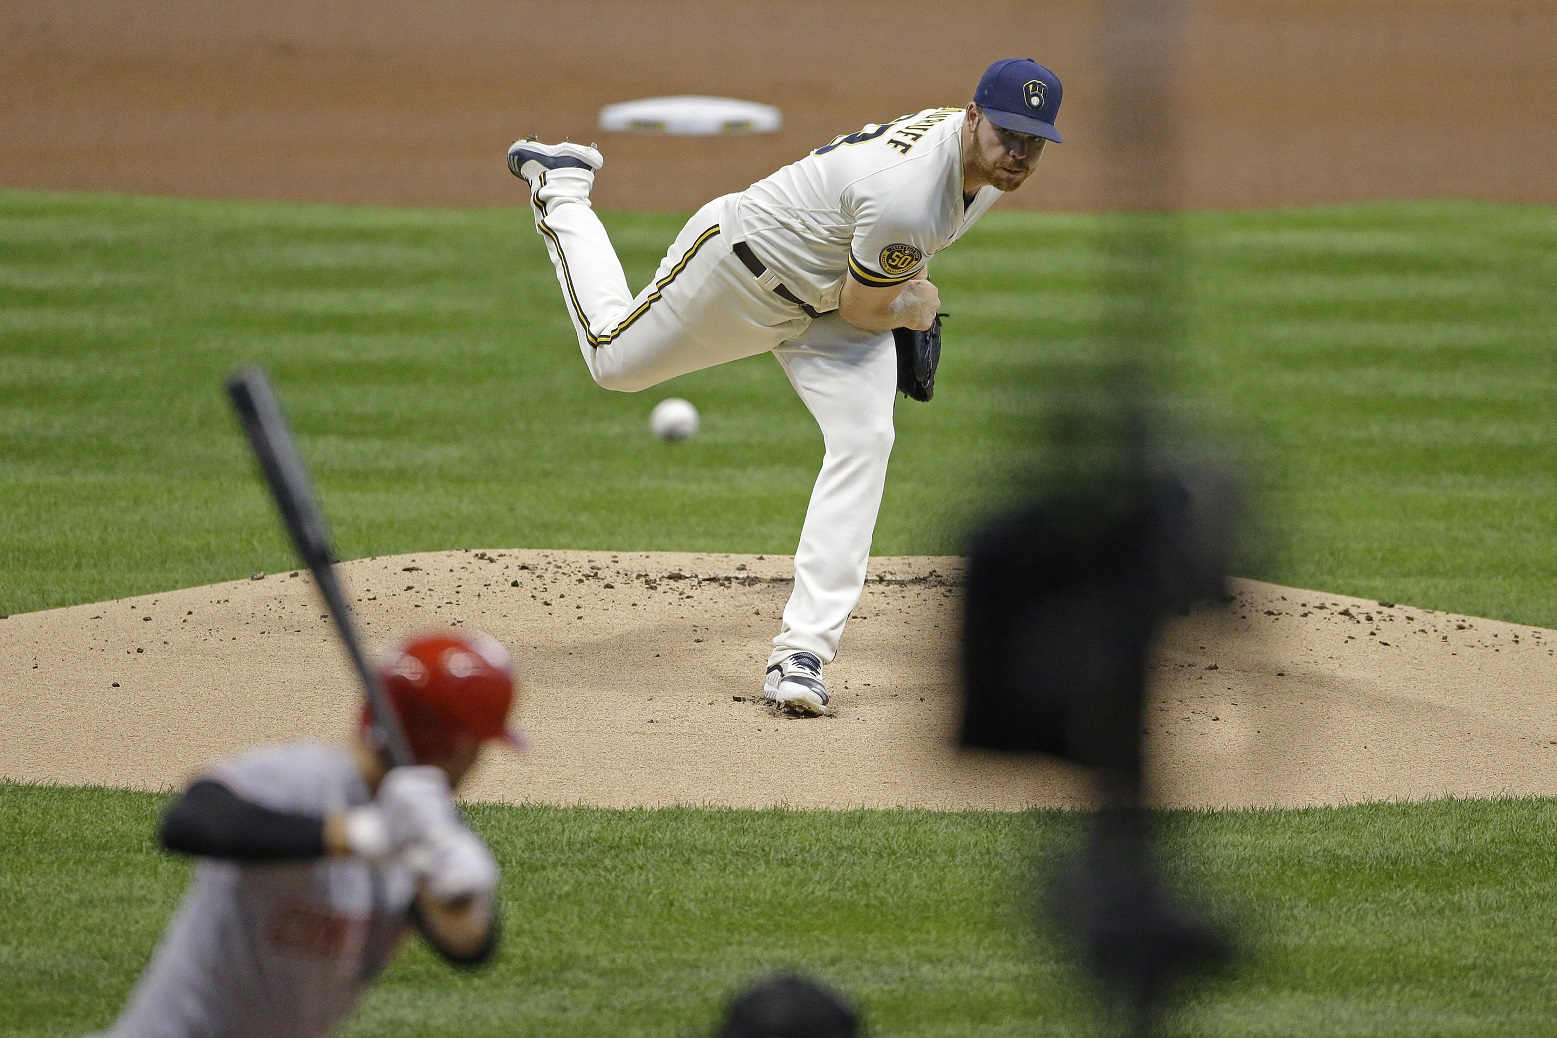 Woodruff leads Brewers to 3-2 win over Reds